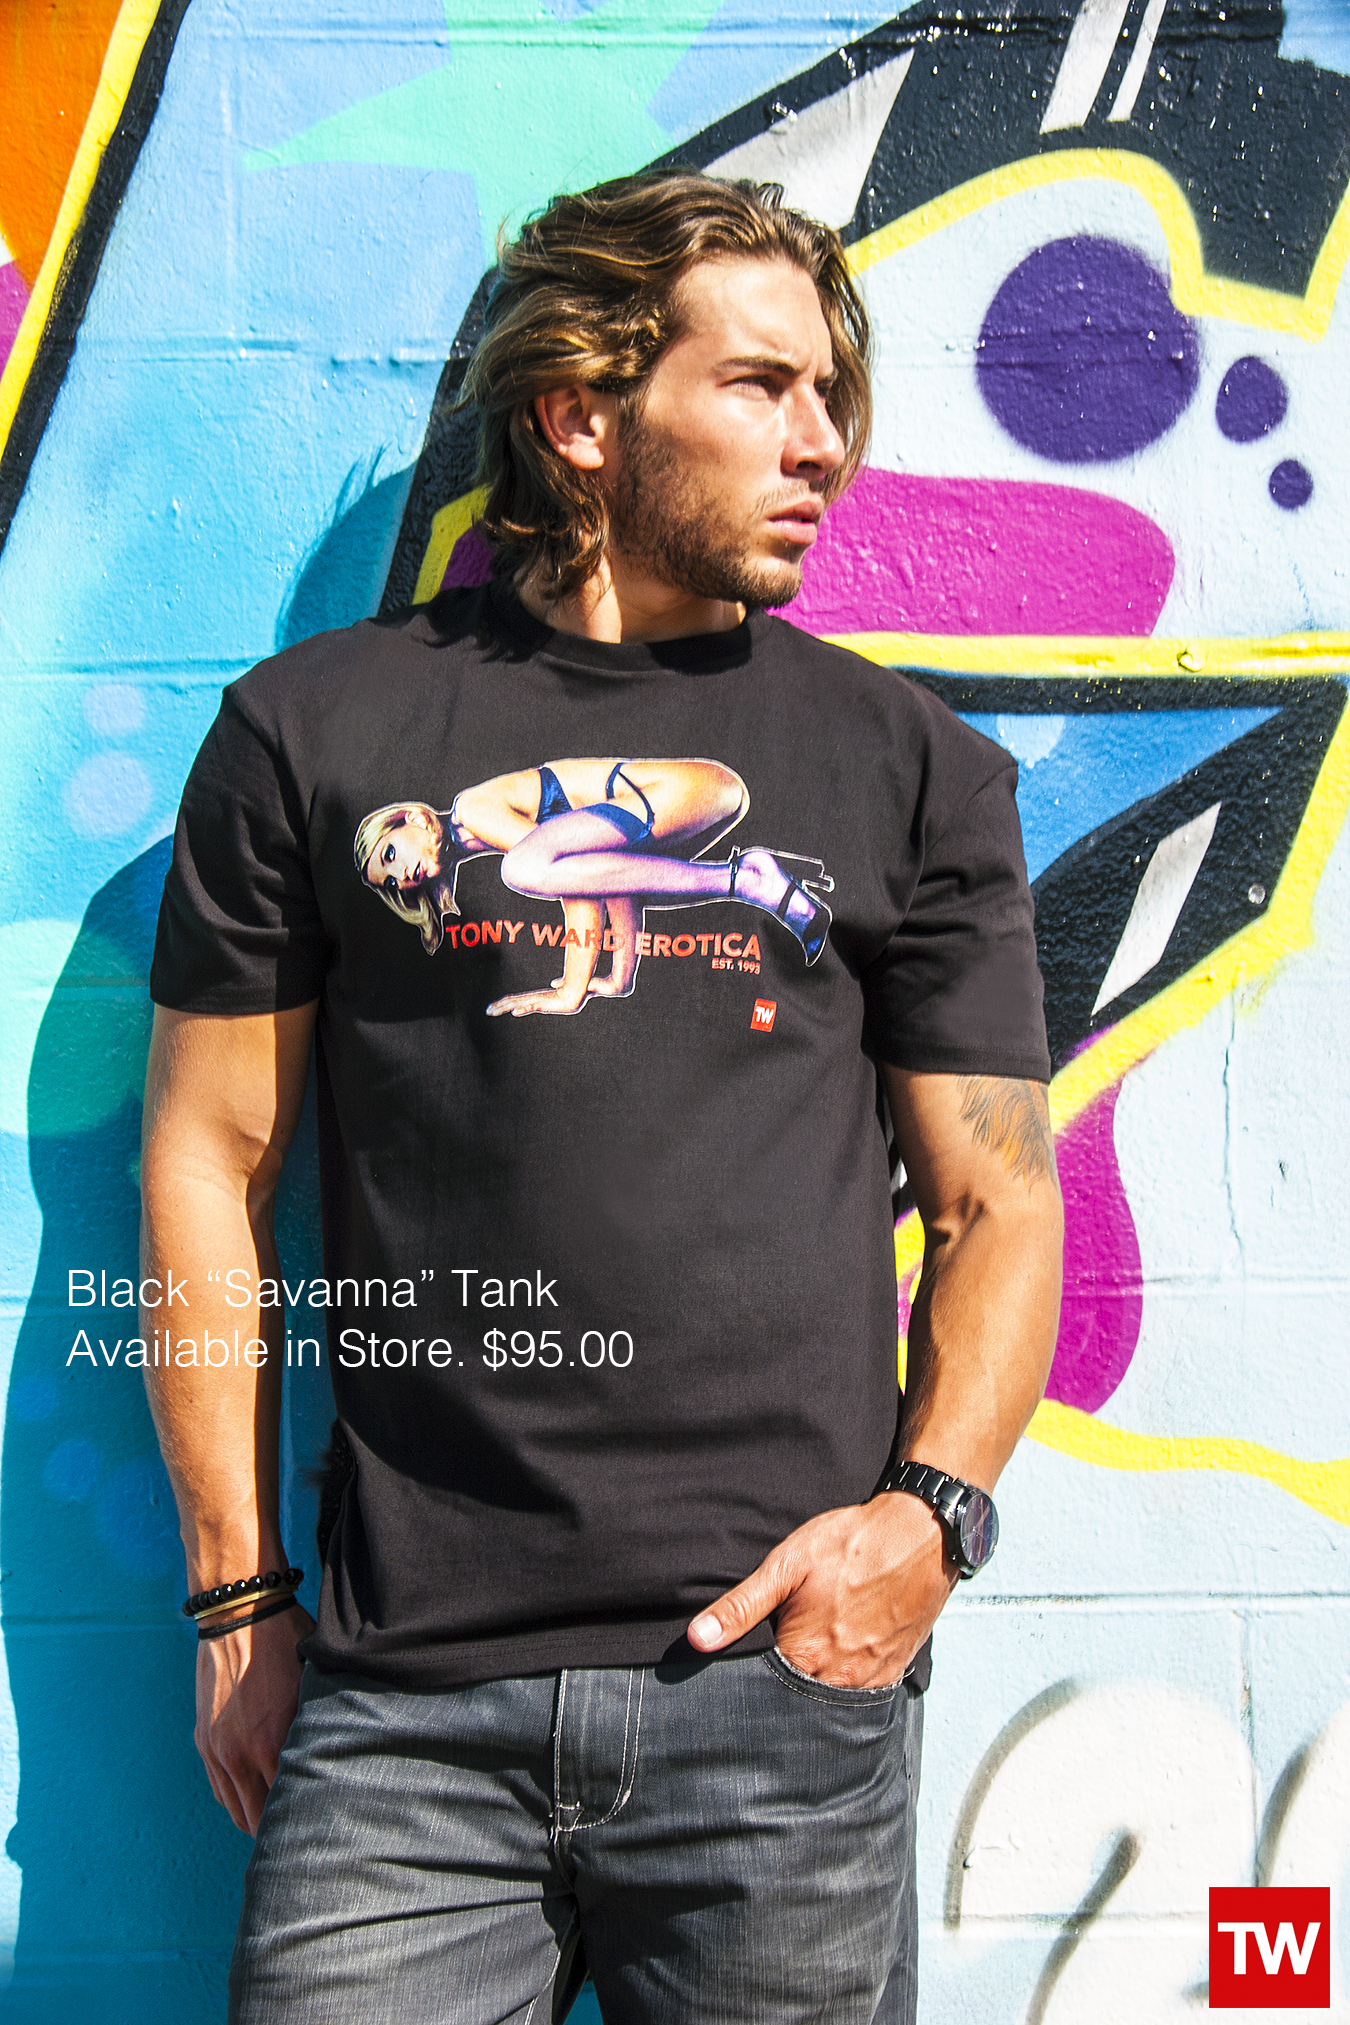 Tony_Ward_Studio_e_commerce_store_t-shirts_black_Savanna_tee_sale_model_Luis